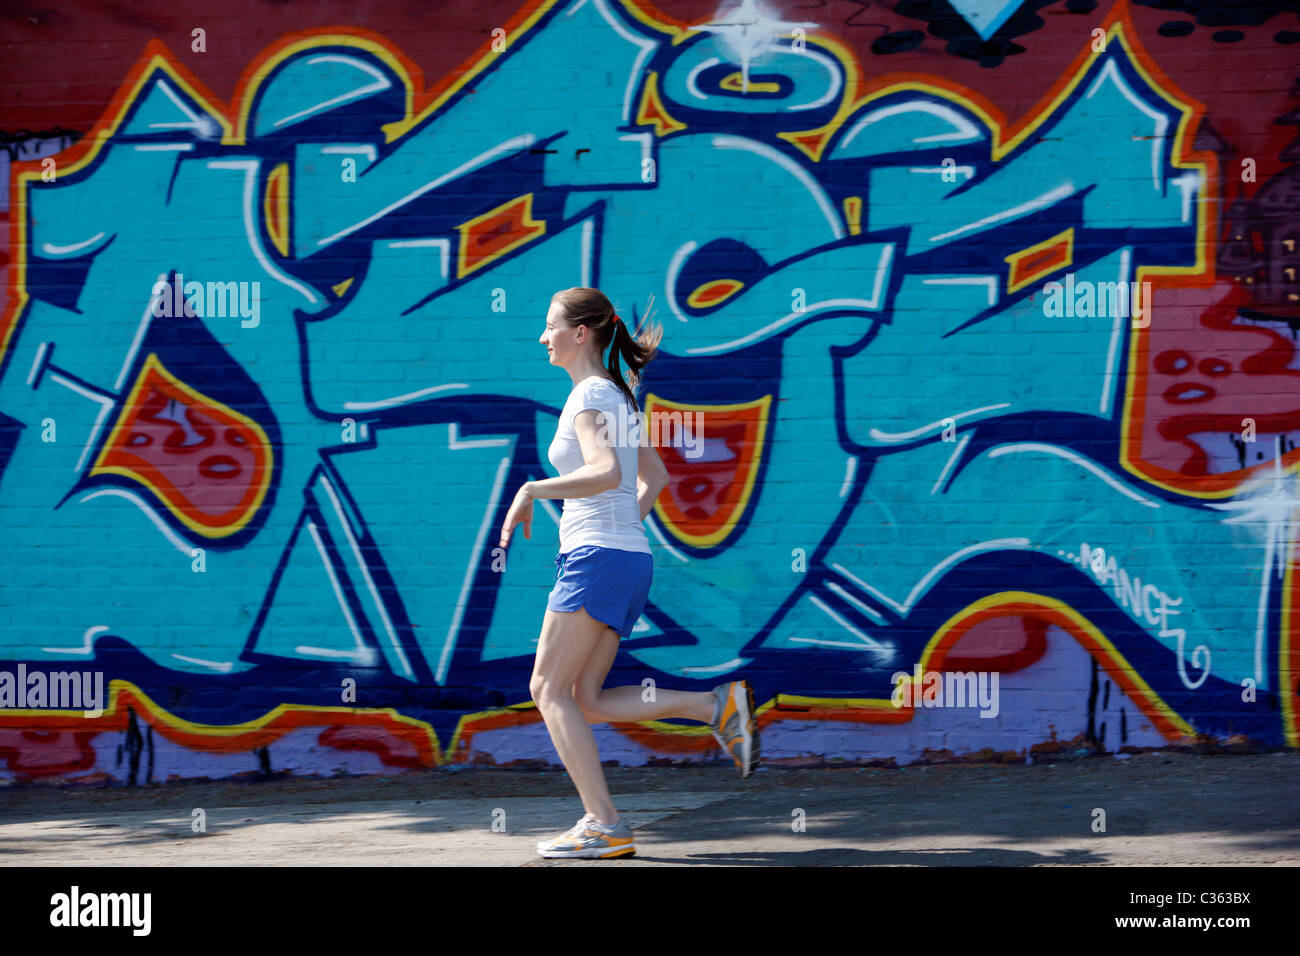 Painting Girl Running Stock Photos For Dance Street Wall 113lpg